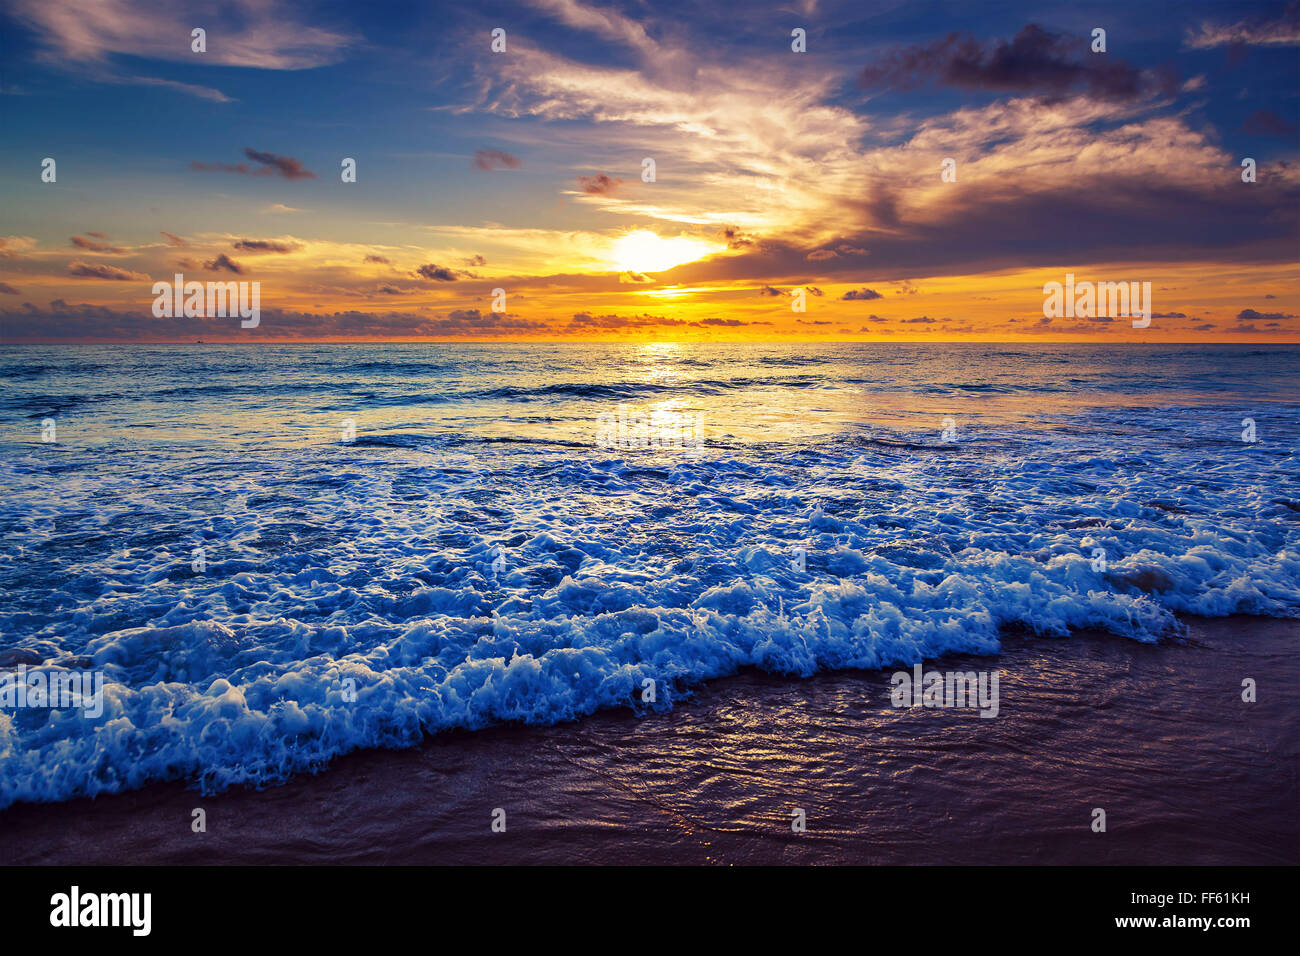 Sunset on Karon Beach. Phuket Island. Thailand. - Stock Image